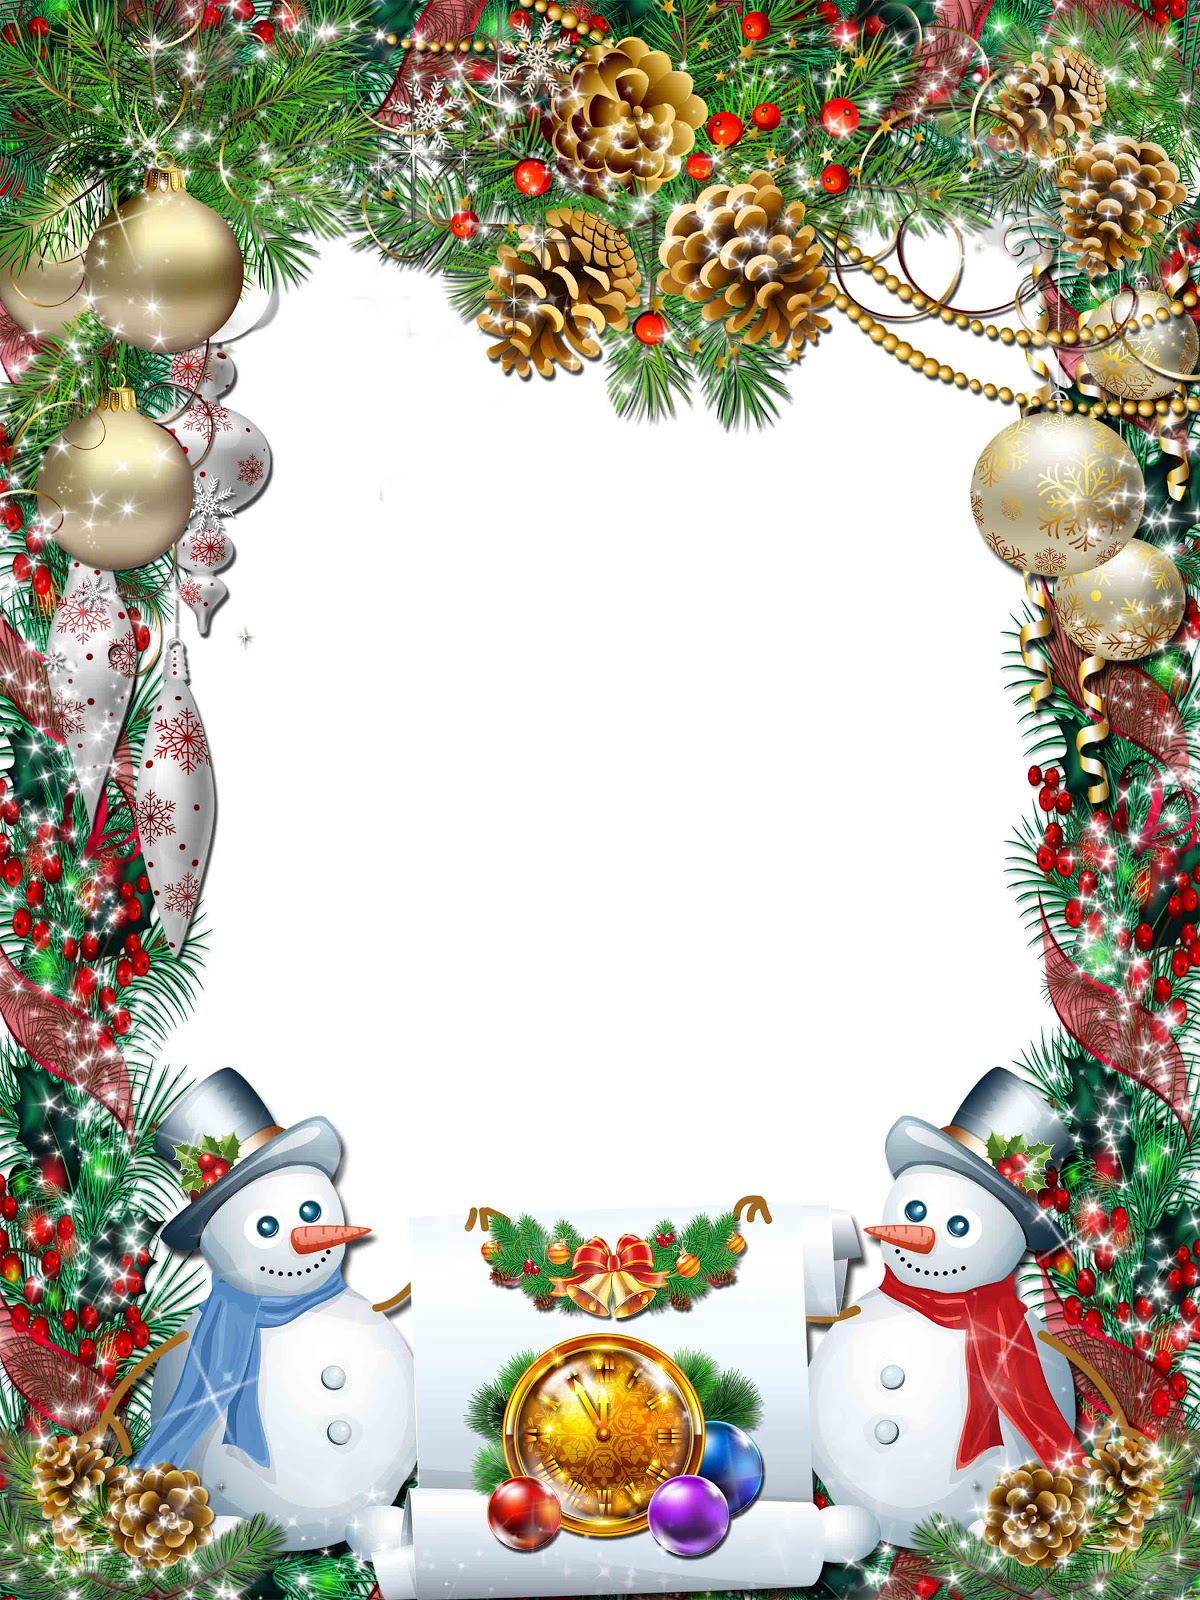 Xmas Frame Transparent PNG Pictures - Free Icons and PNG Backgrounds